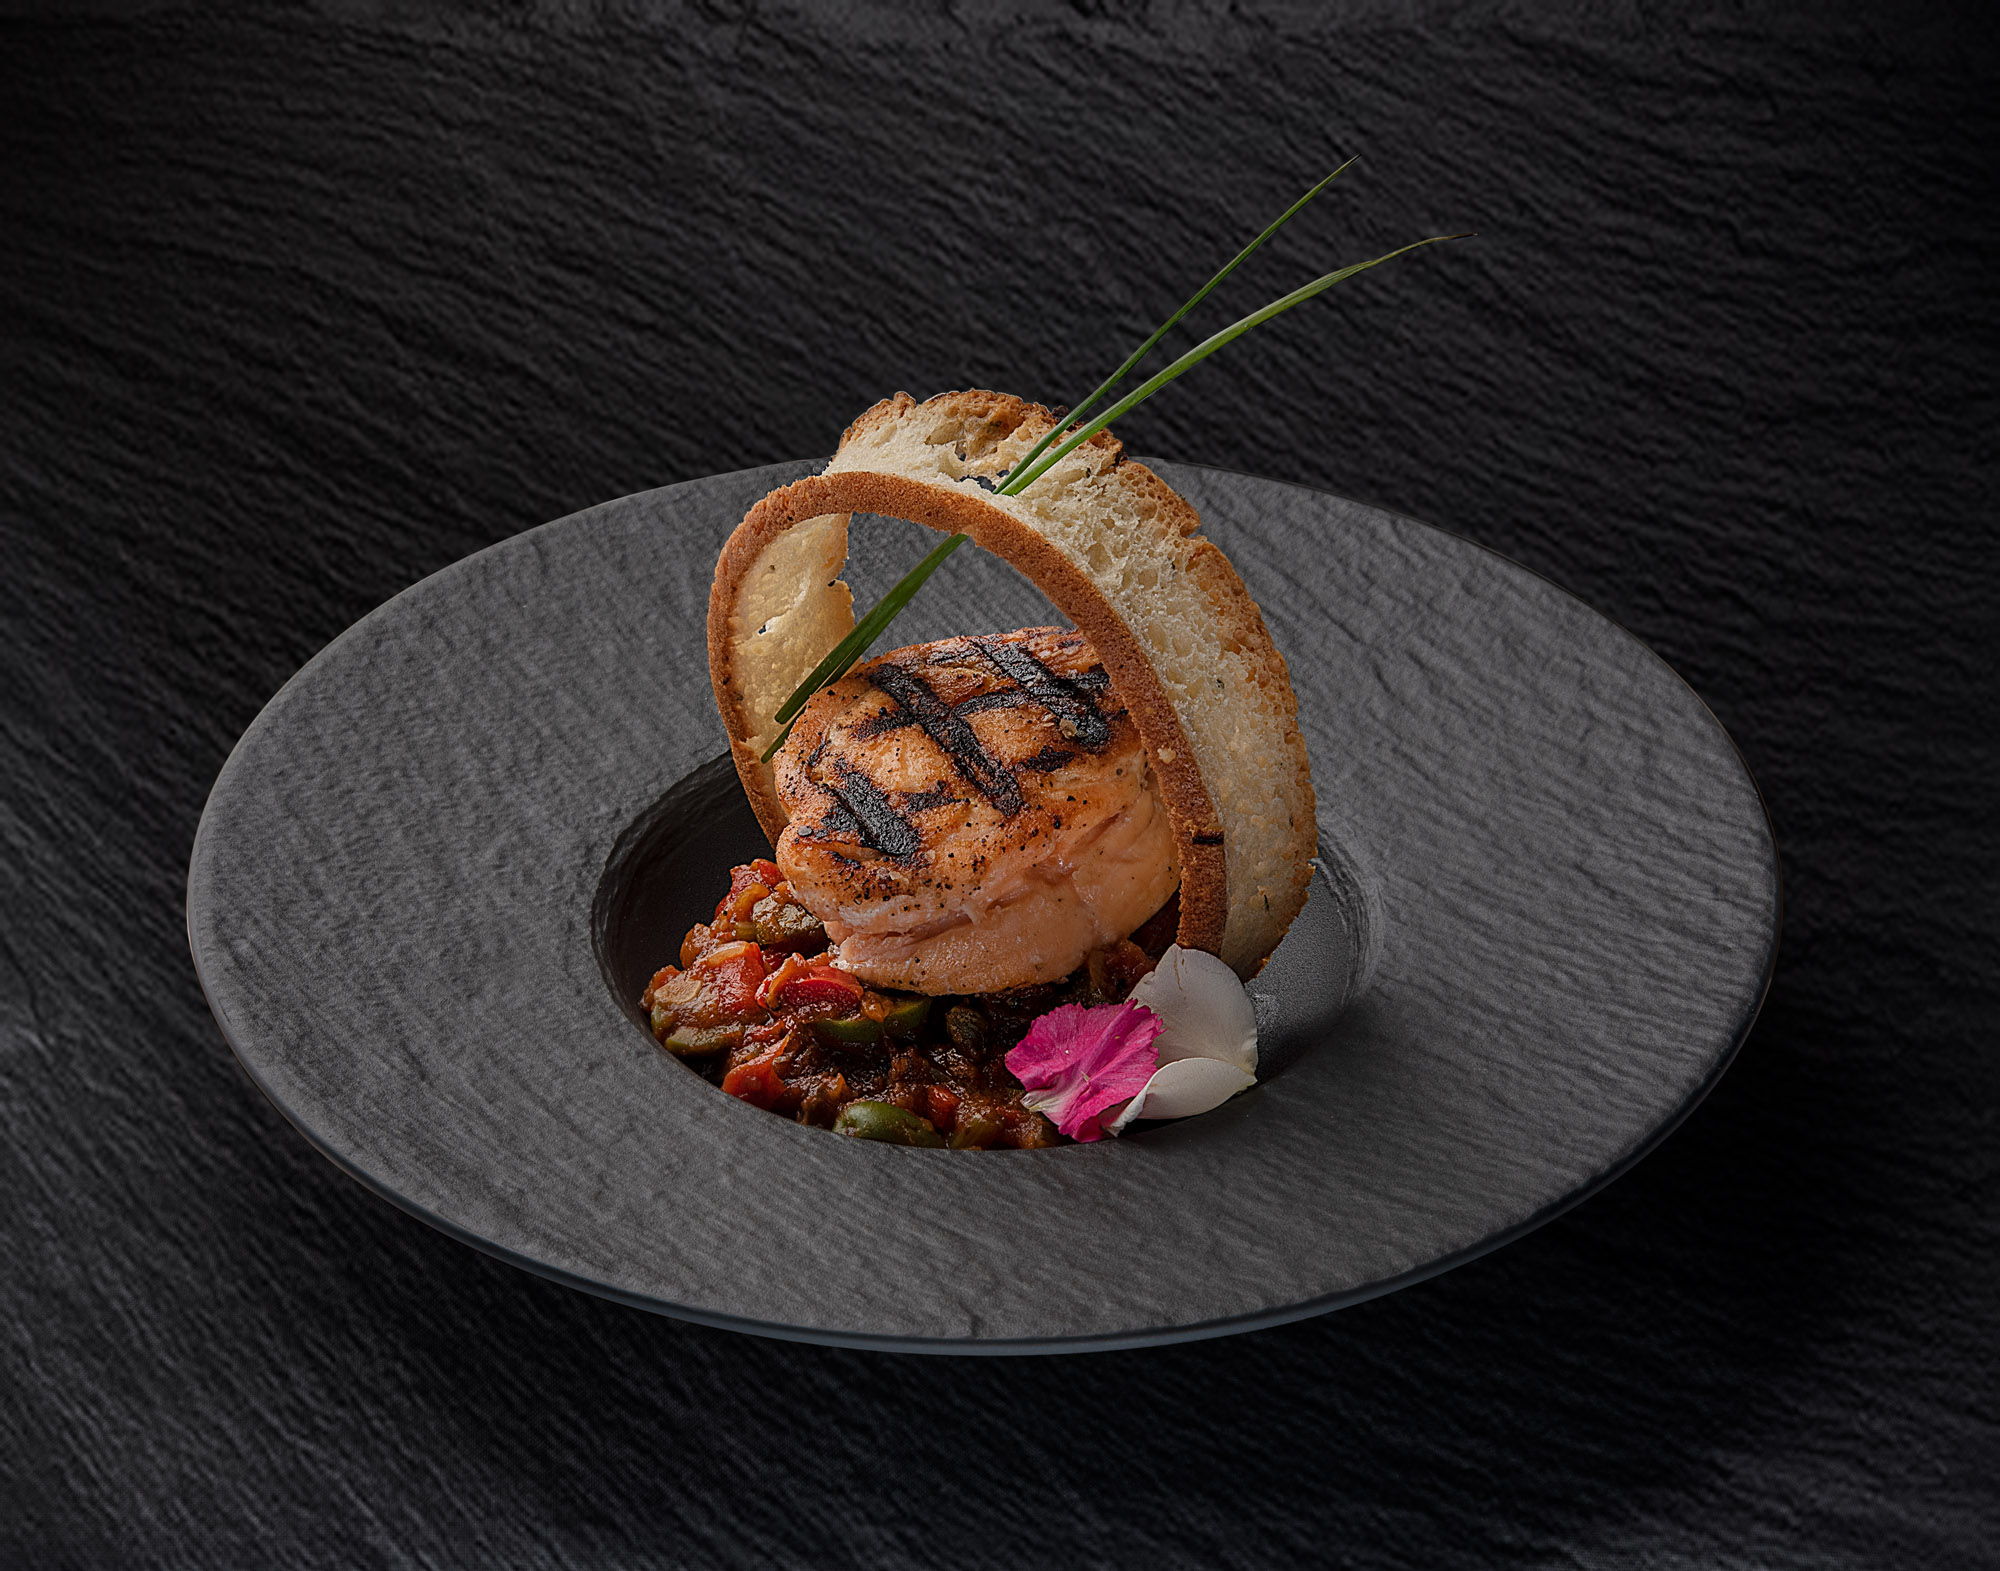 A simple dish made exceptional. Lighting for texture and color